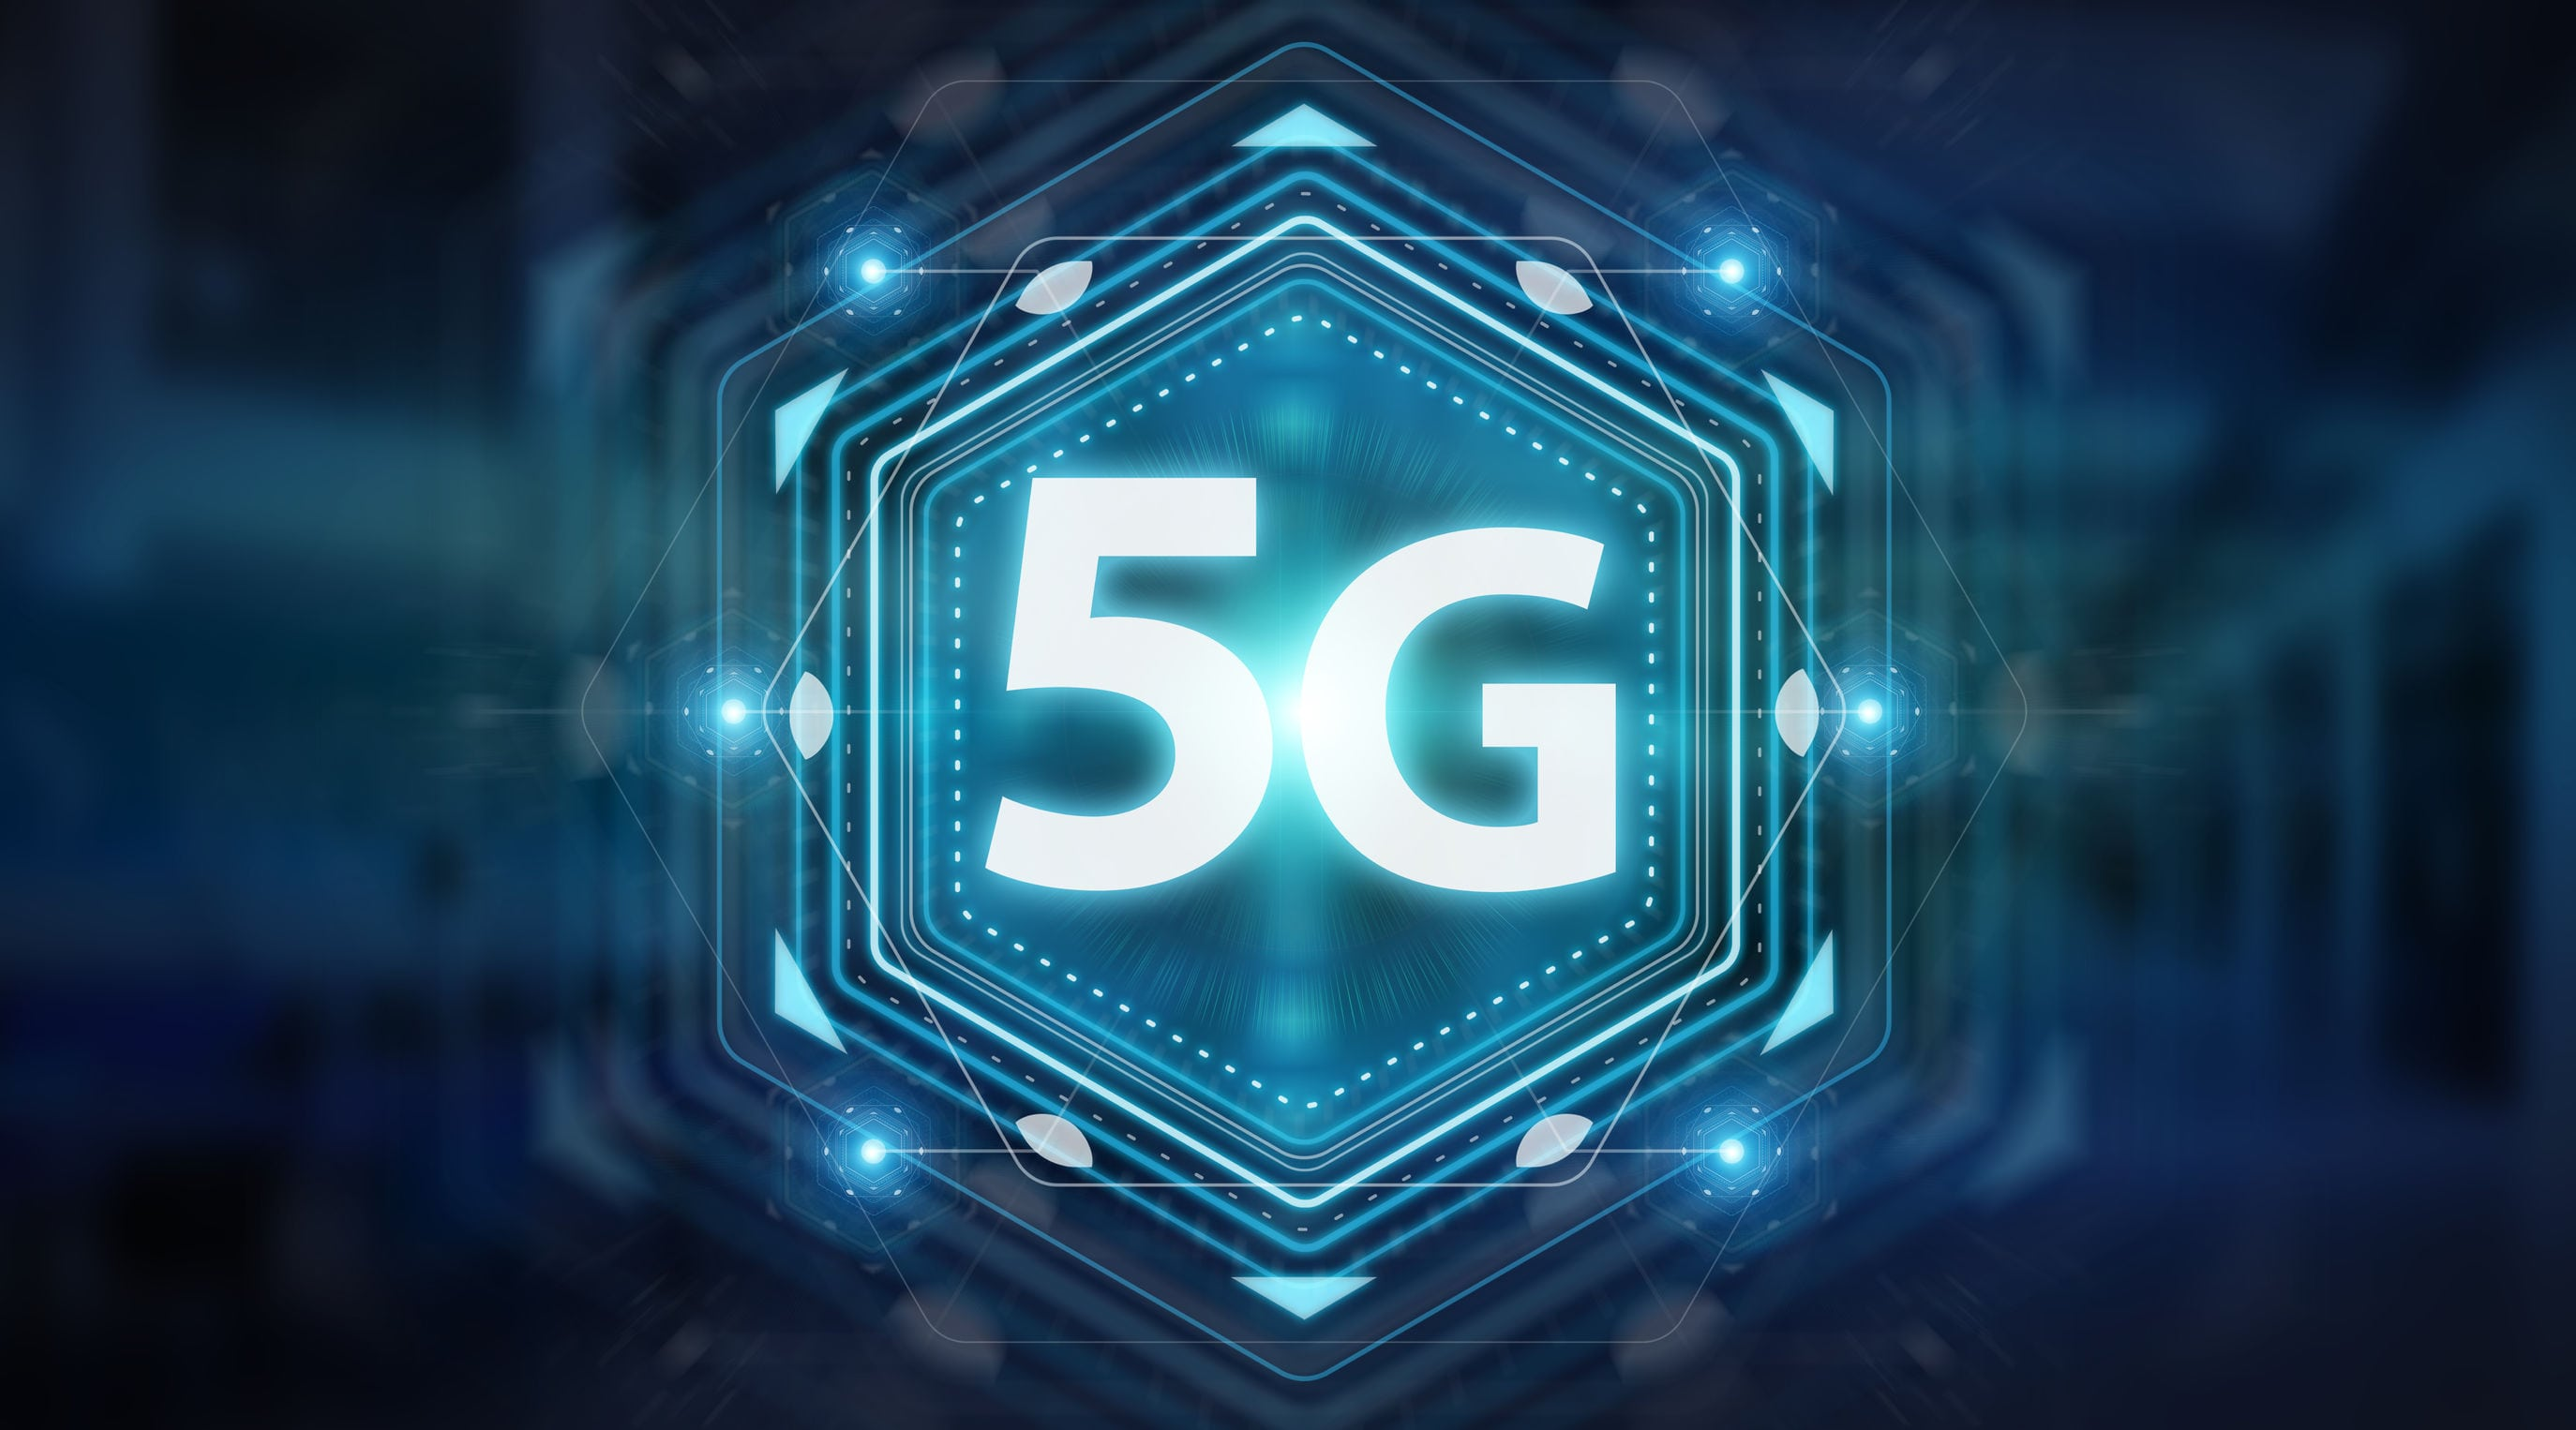 how fast is 5G compared to 4g ?